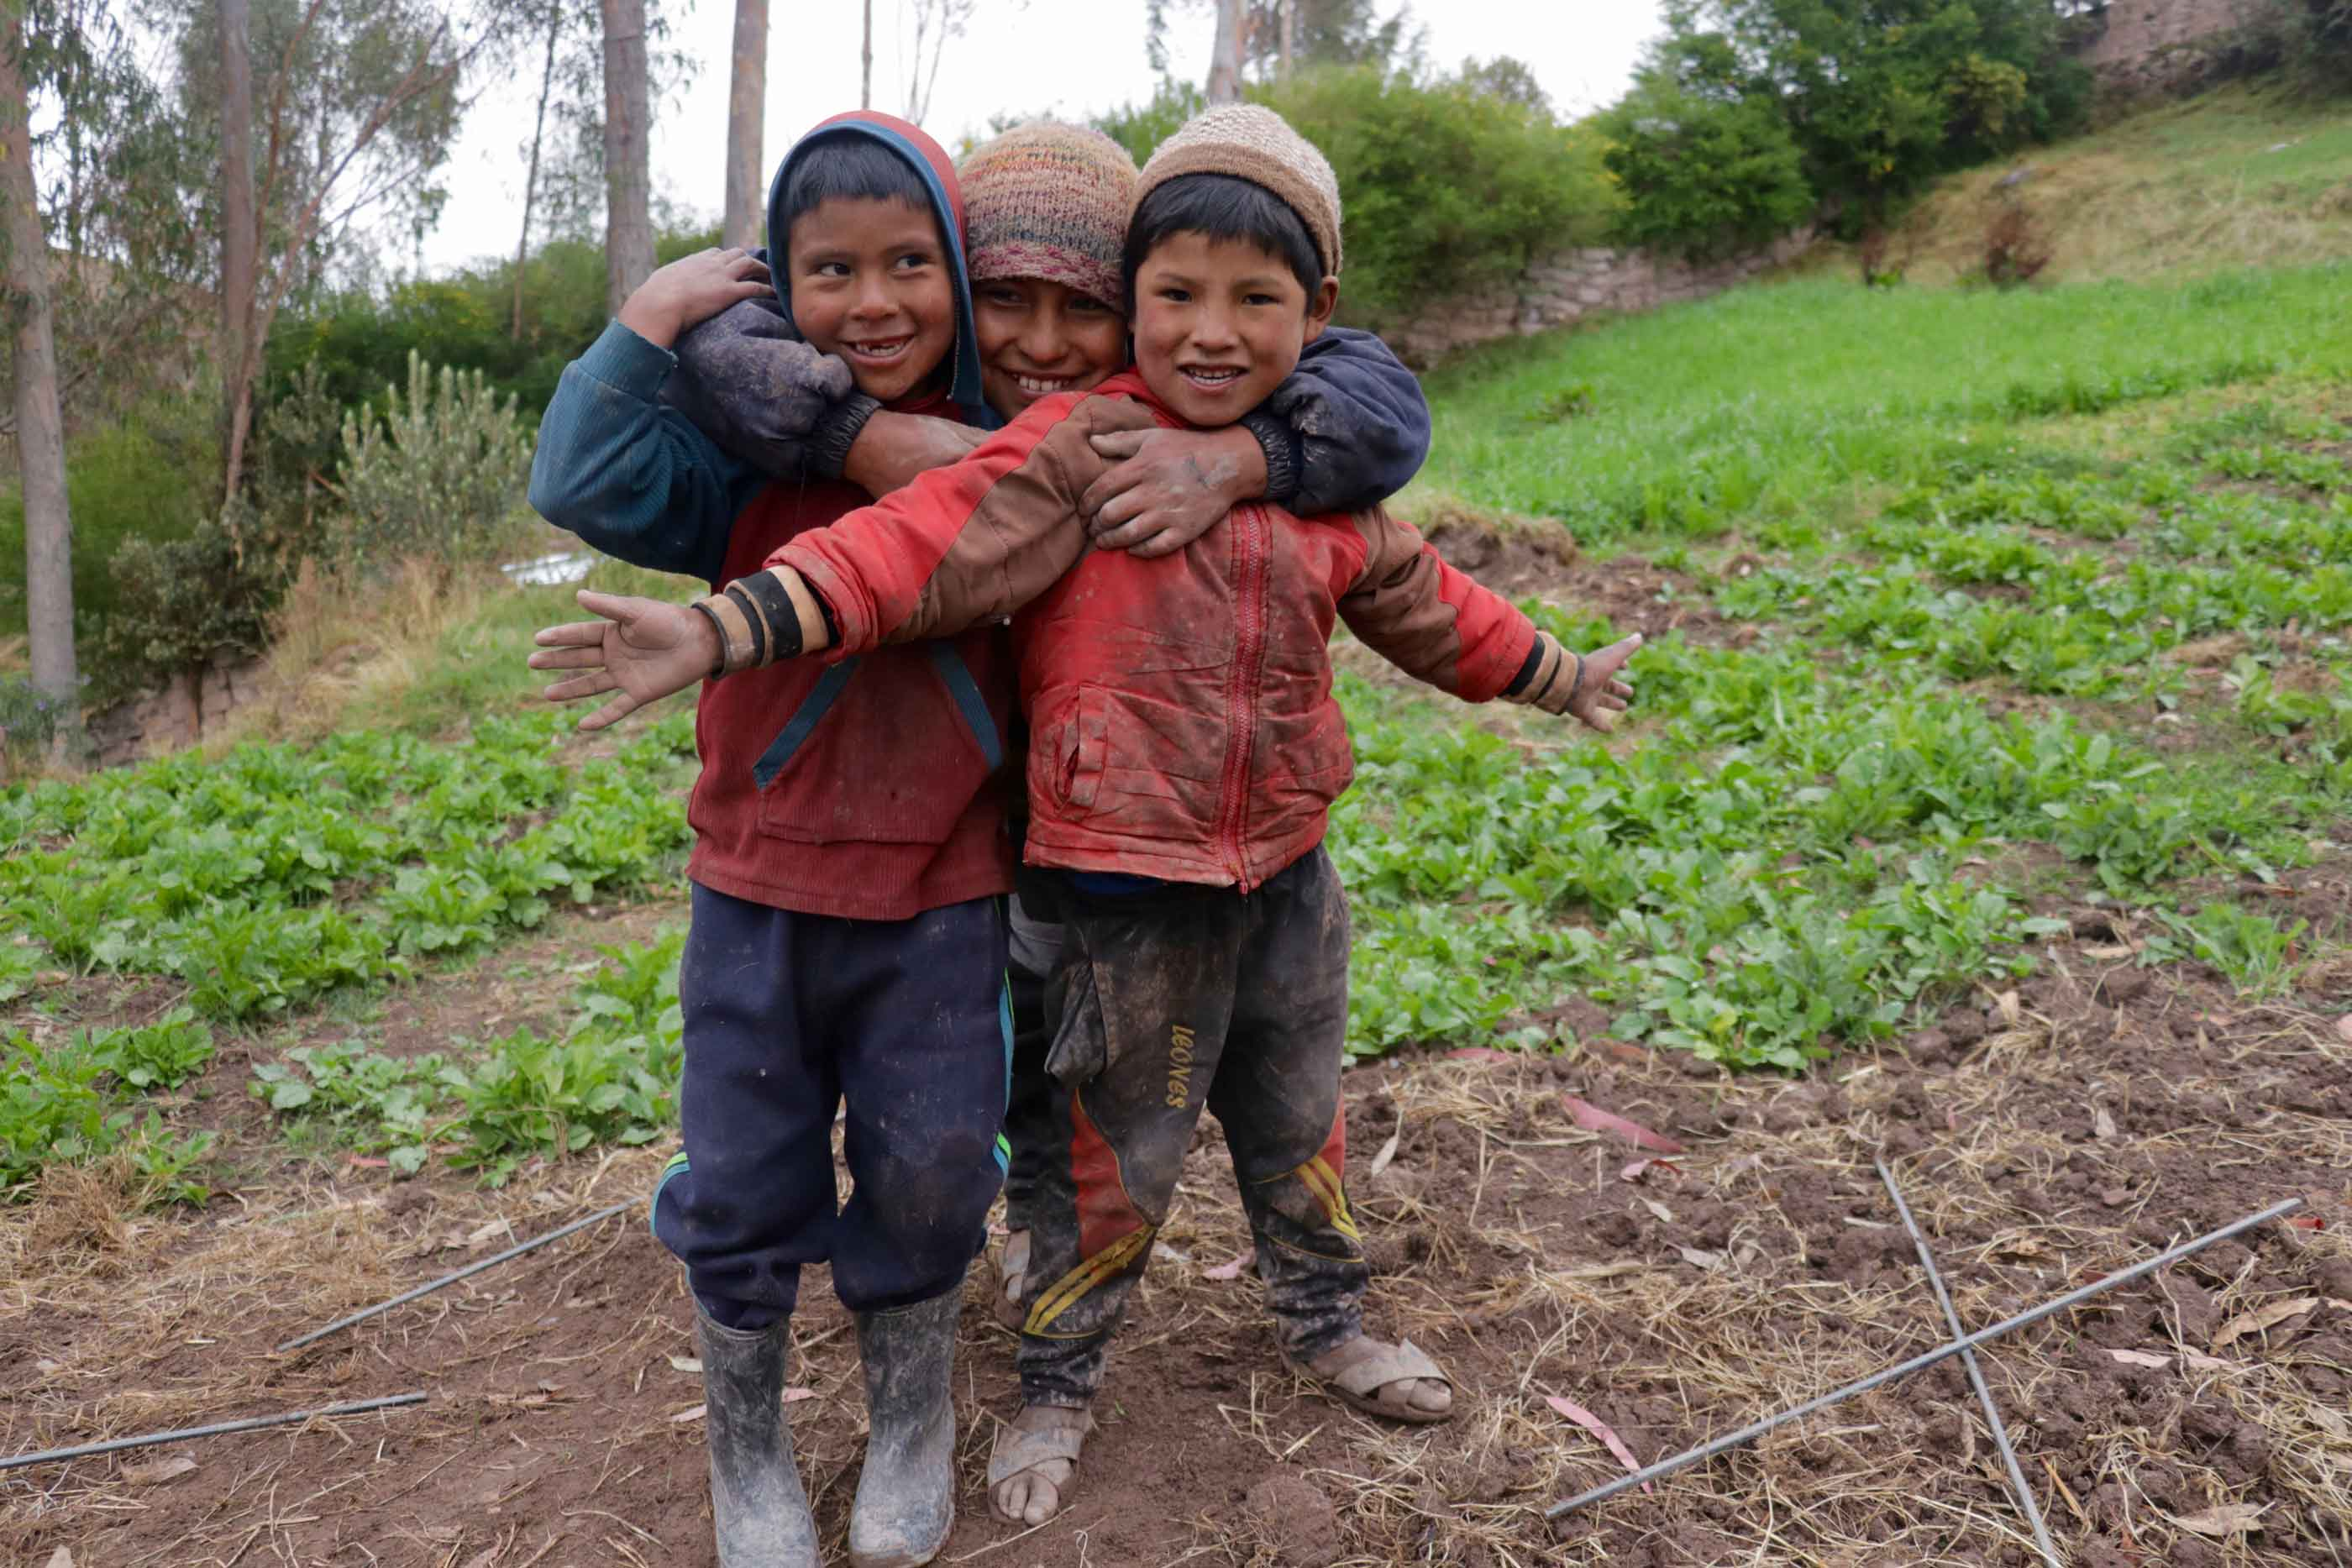 Support the Andean Alliance for Sustainable Development